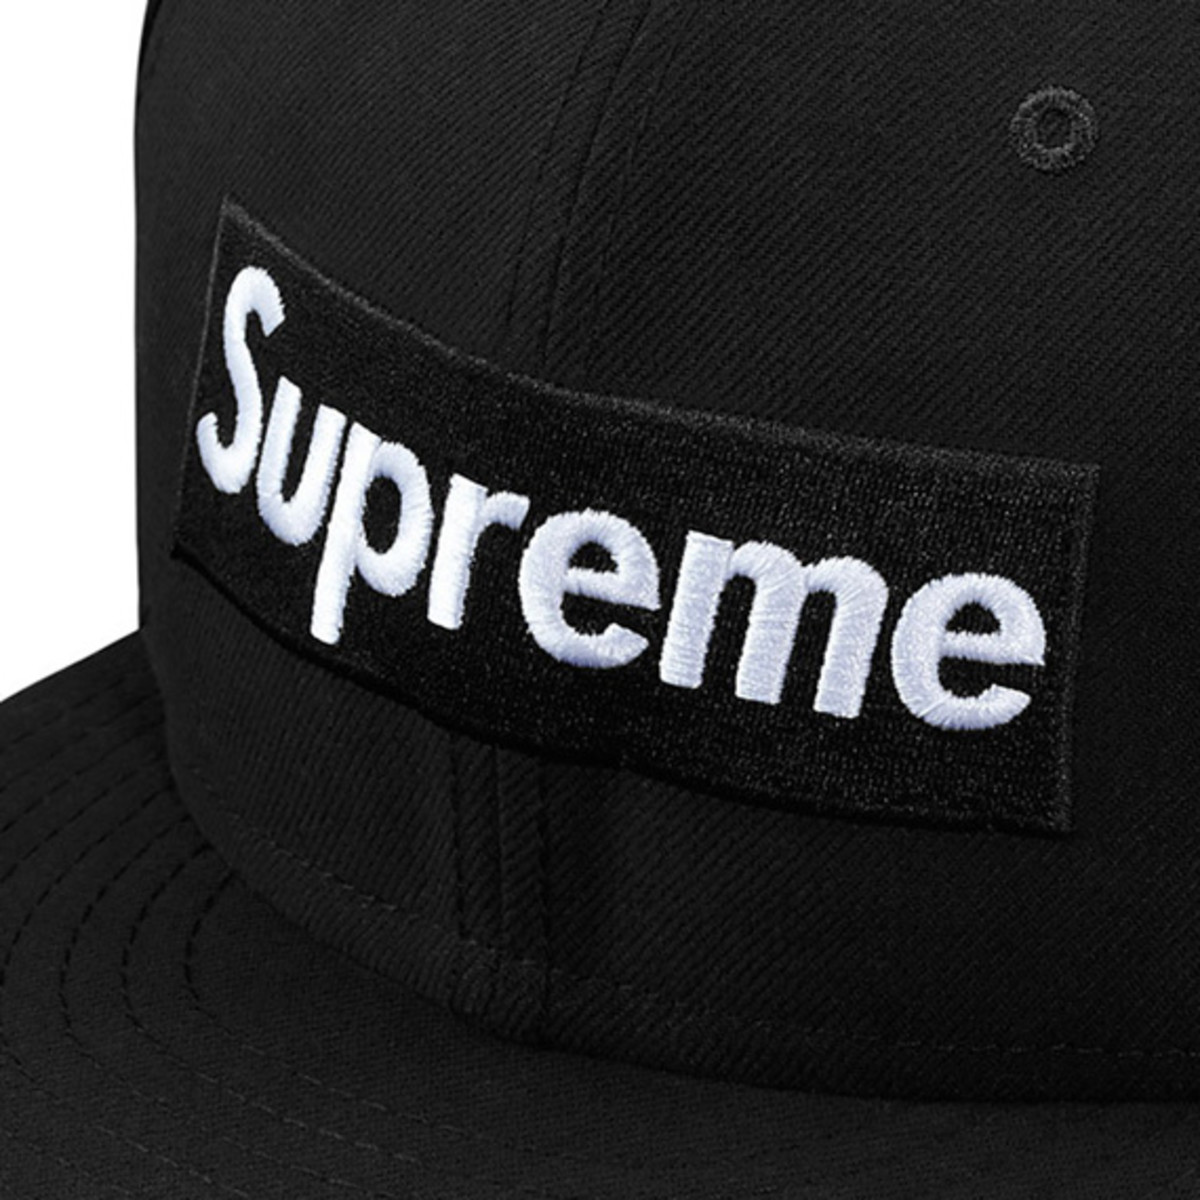 c3c259865d6 Supreme x GORE-TEX x New Era - Box Logo 59FIFTY Fitted Caps ...